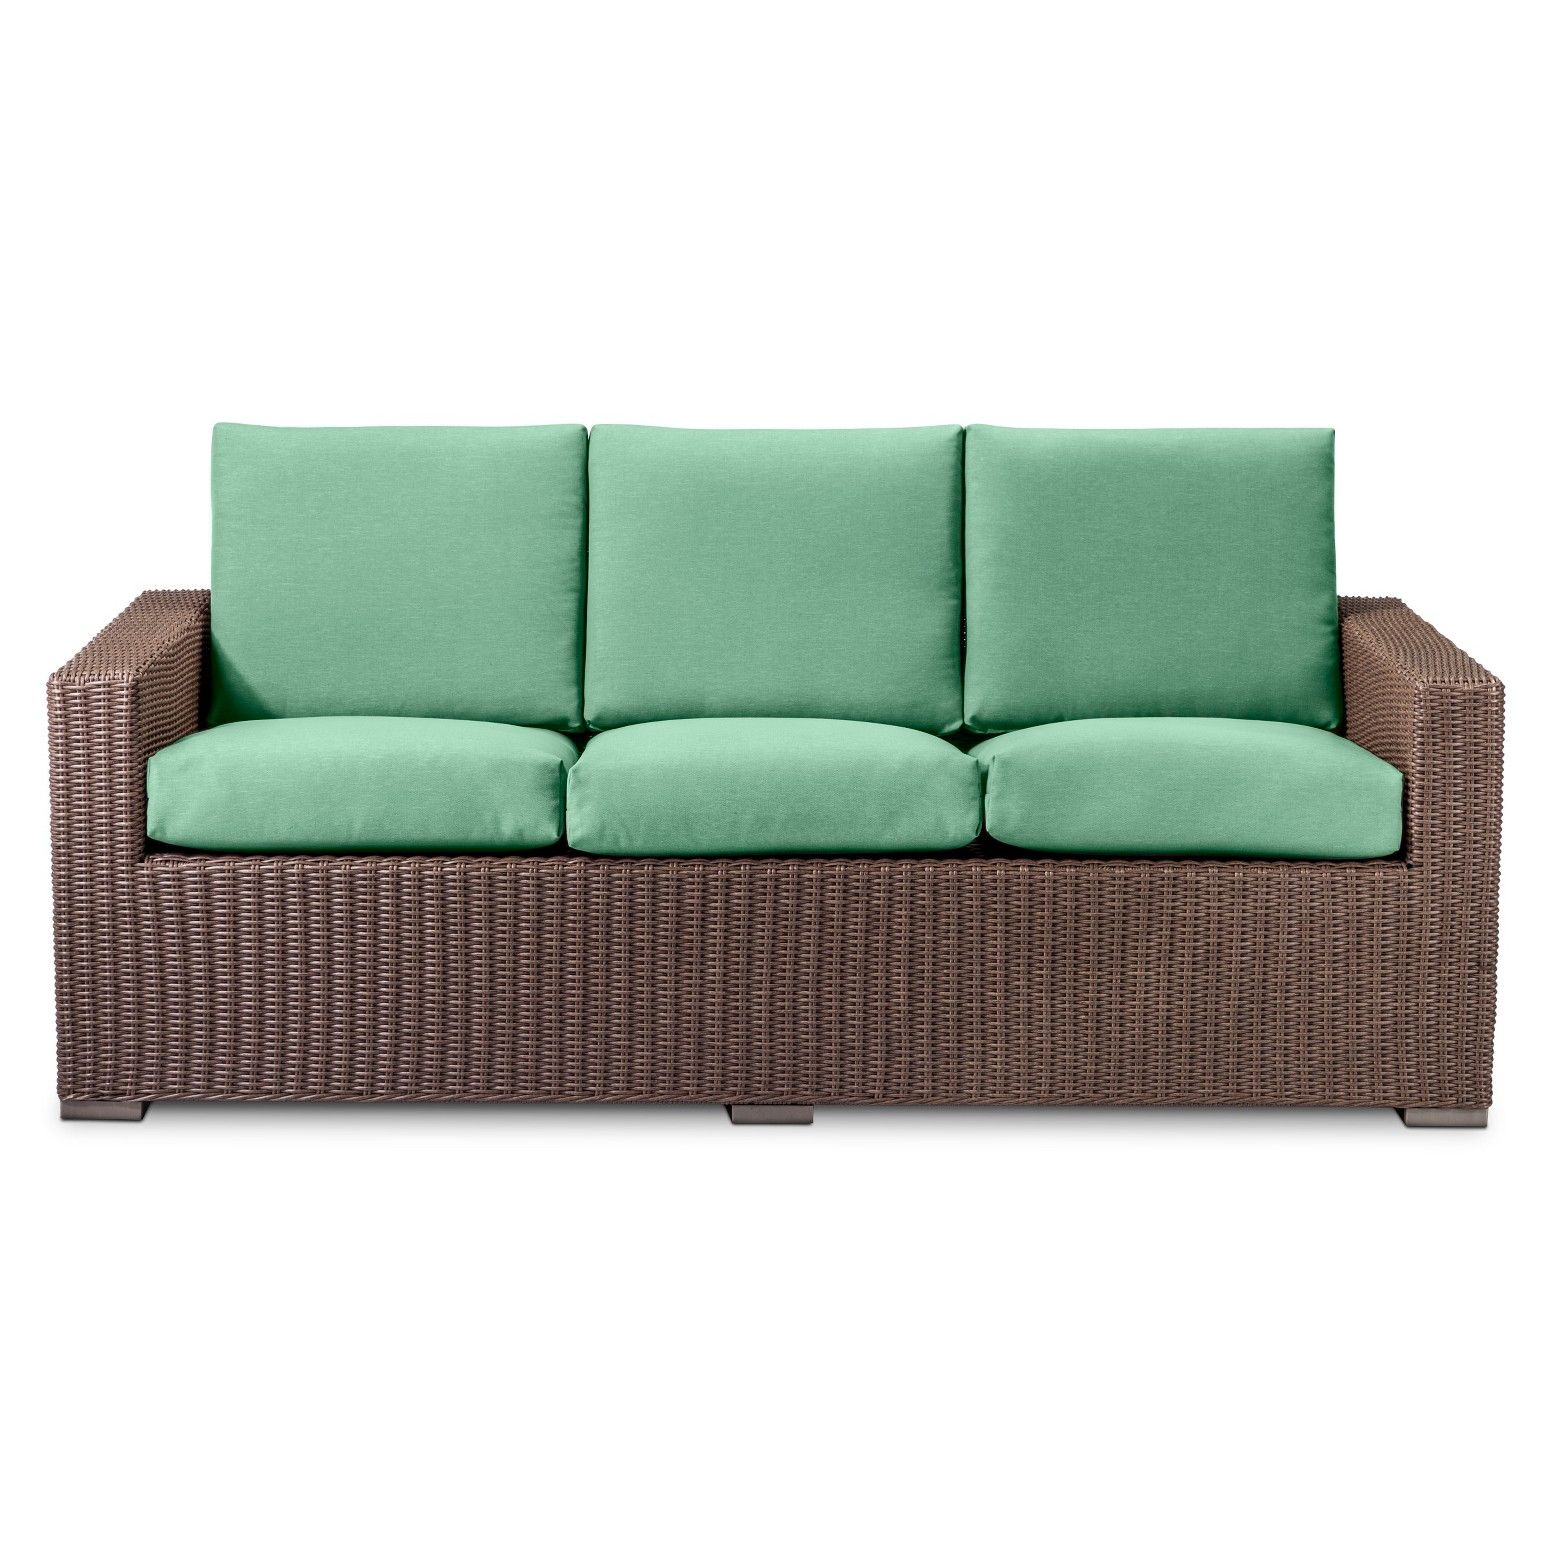 Simplistic and beautiful the Heatherstone All Weather Wicker Sofa